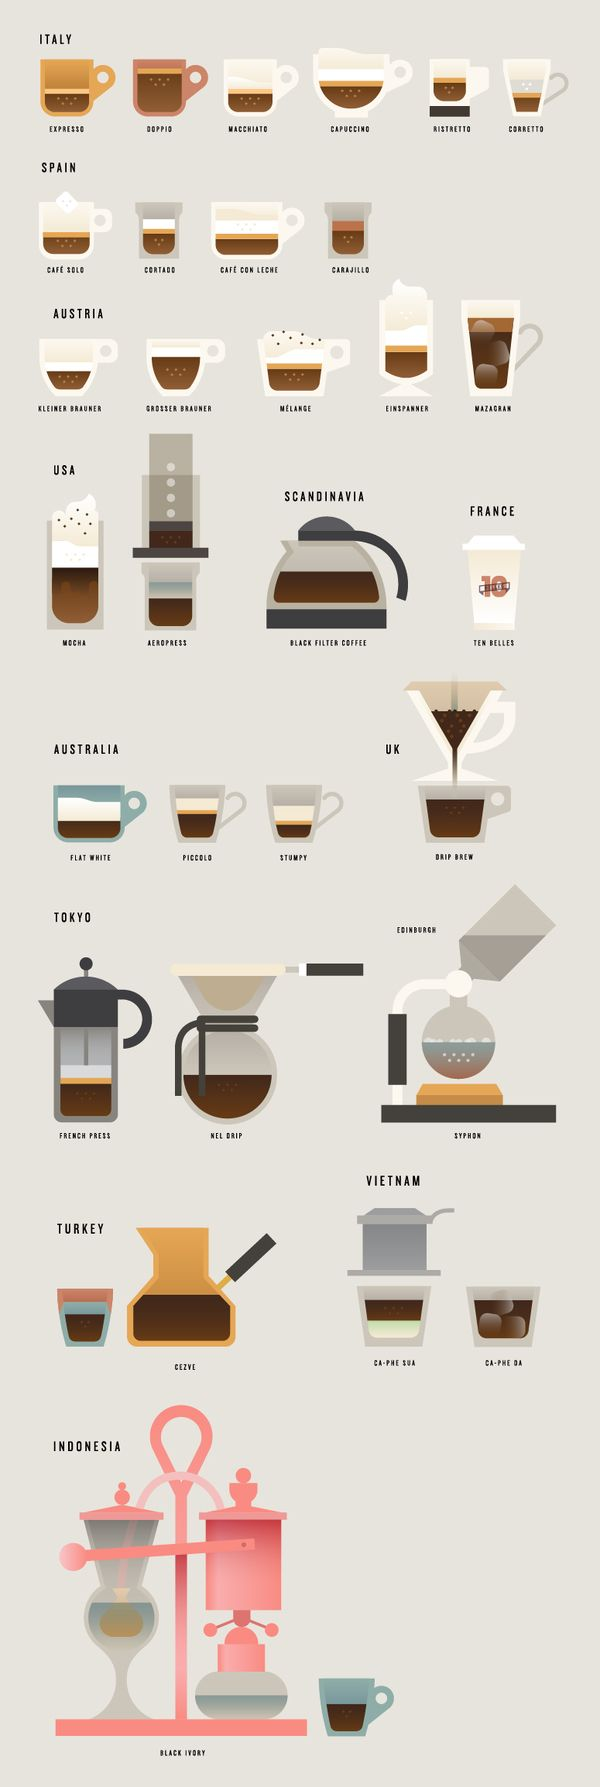 Coffee around the world.